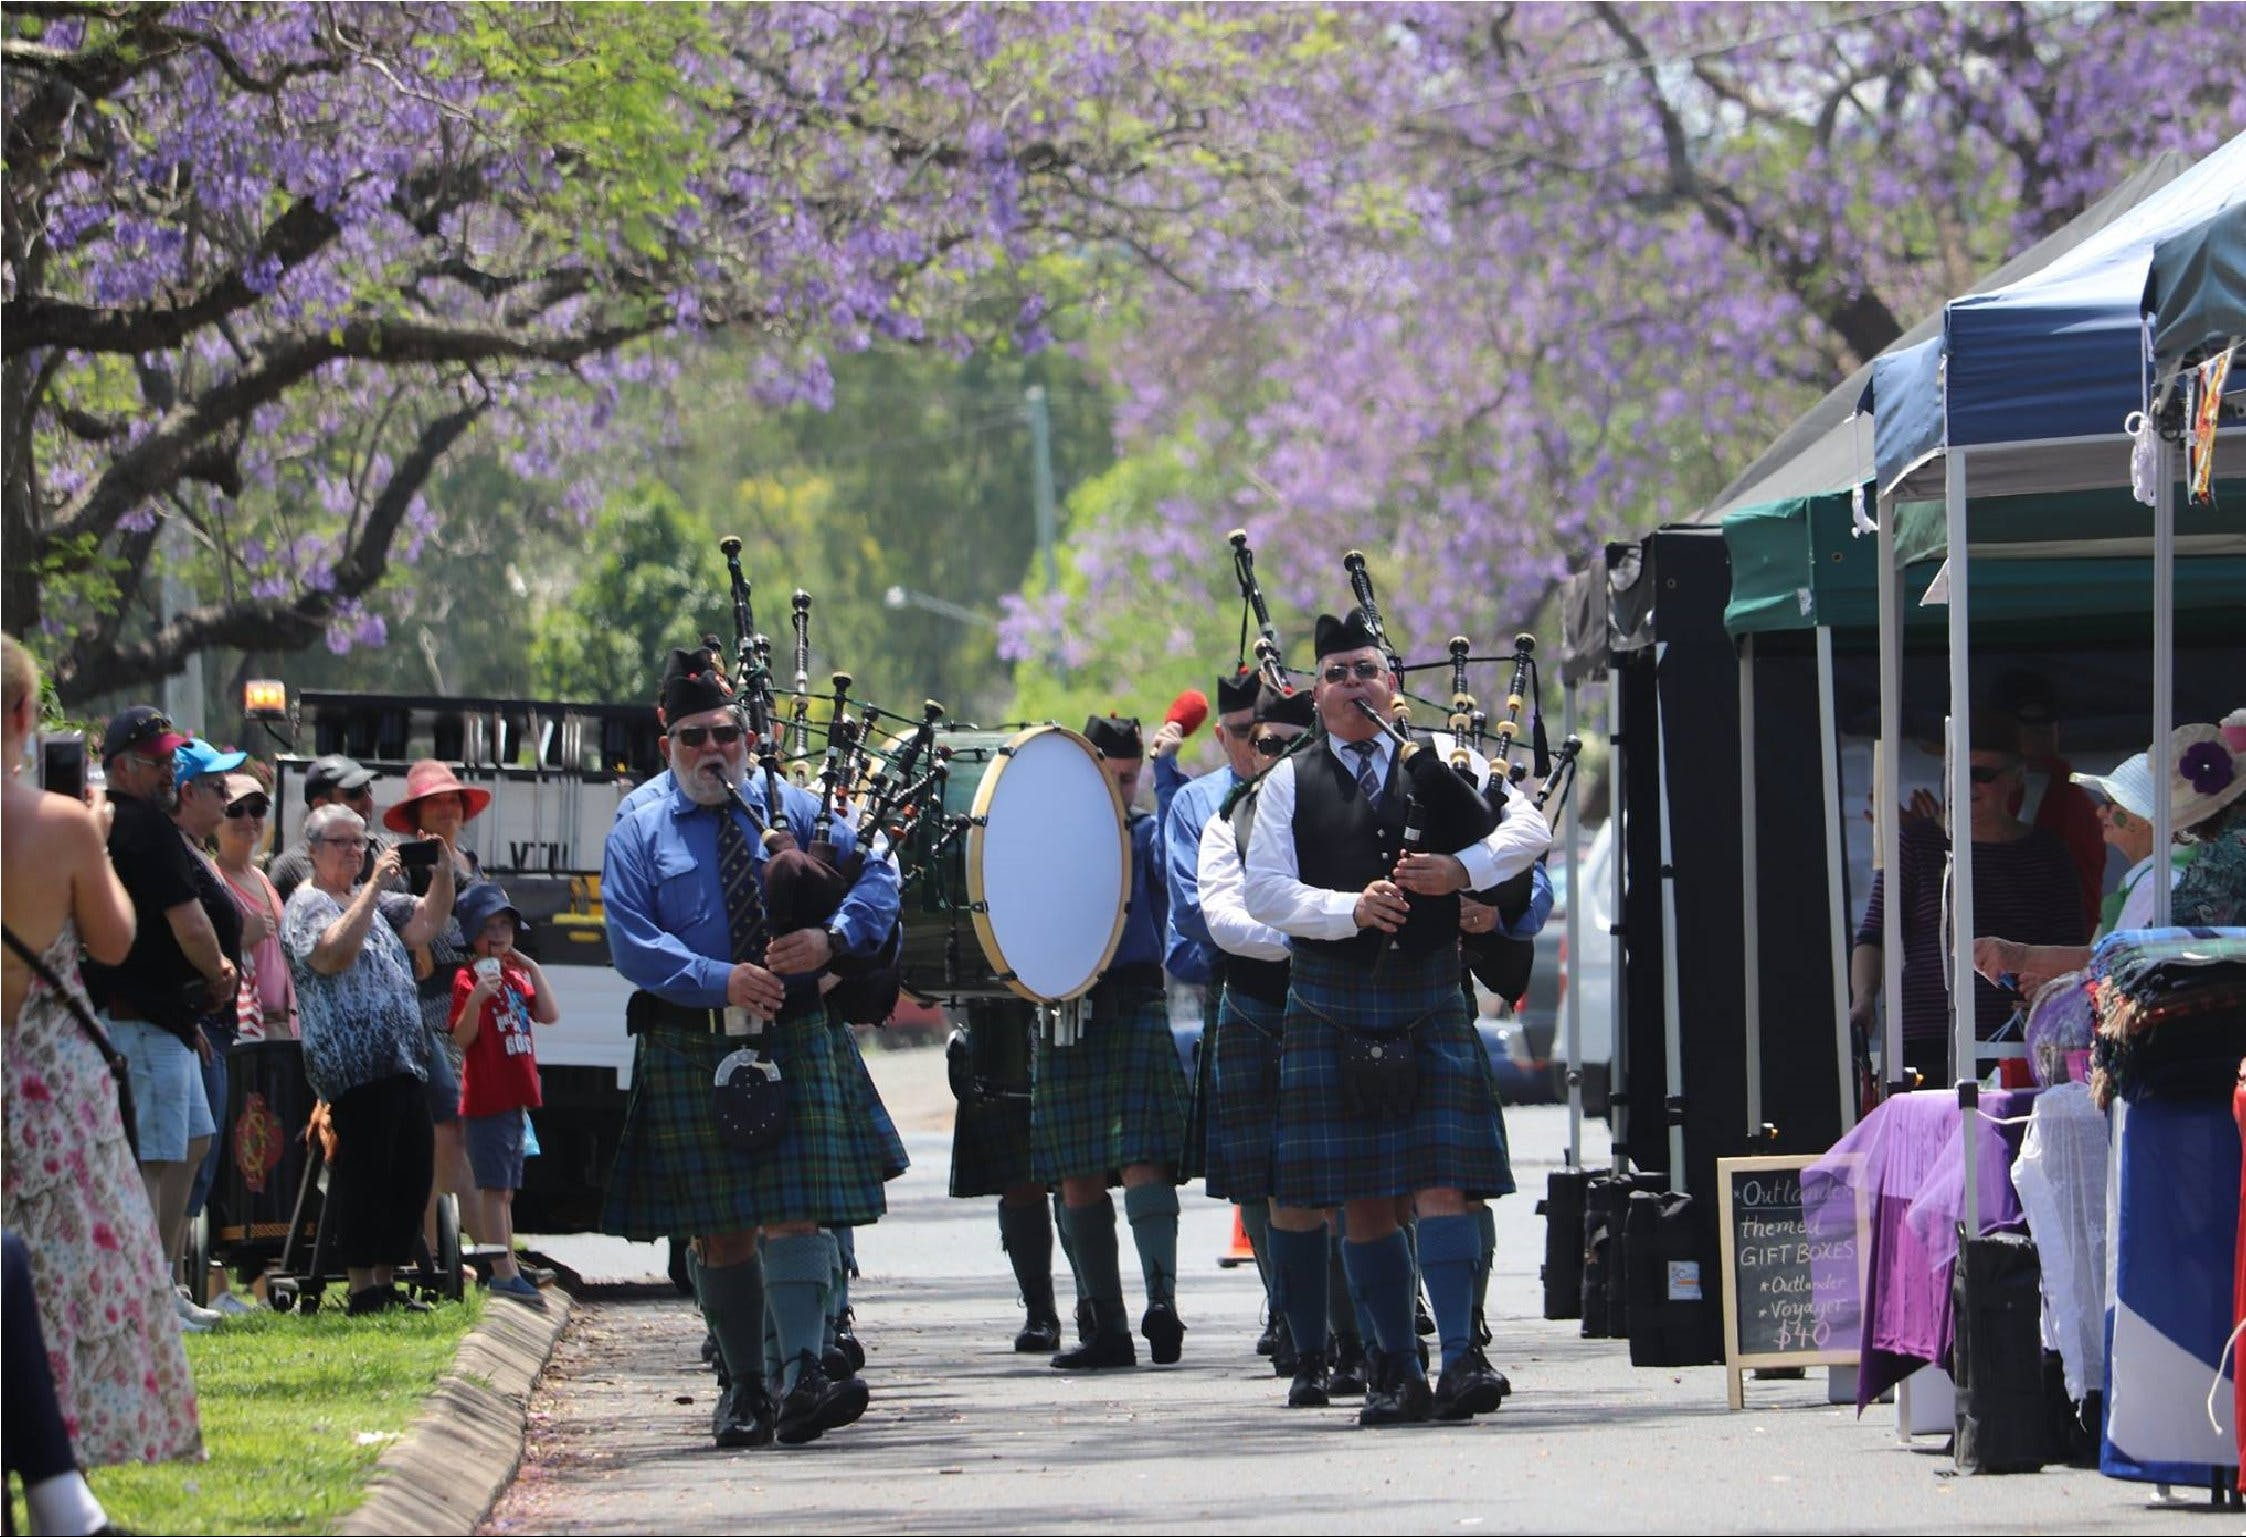 Celtic Festival of Queensland - St Kilda Accommodation